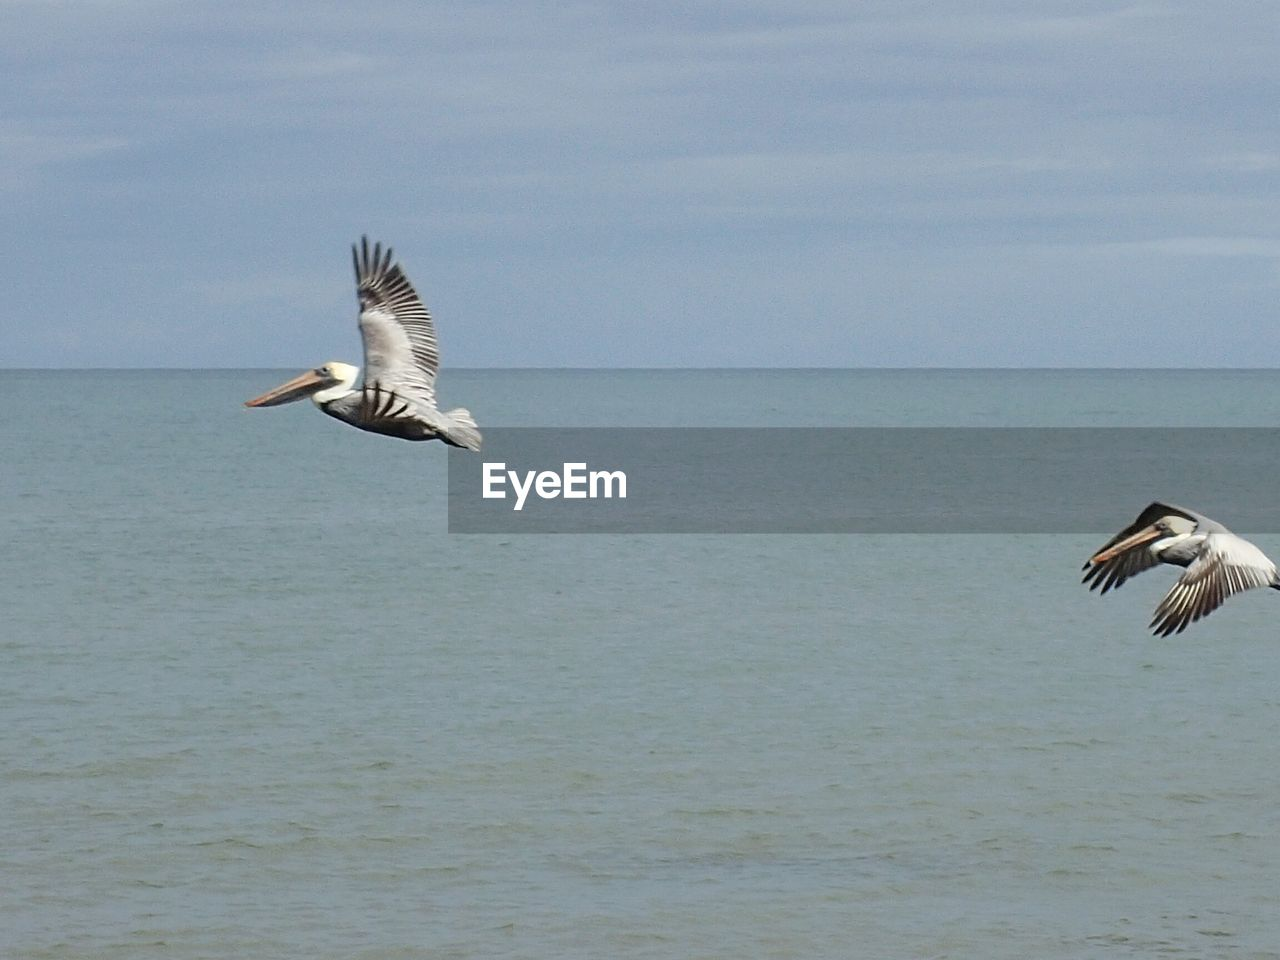 flying, spread wings, bird, animals in the wild, animal themes, sea, water, mid-air, nature, animal wildlife, motion, one animal, beauty in nature, horizon over water, day, seagull, outdoors, no people, scenics, sky